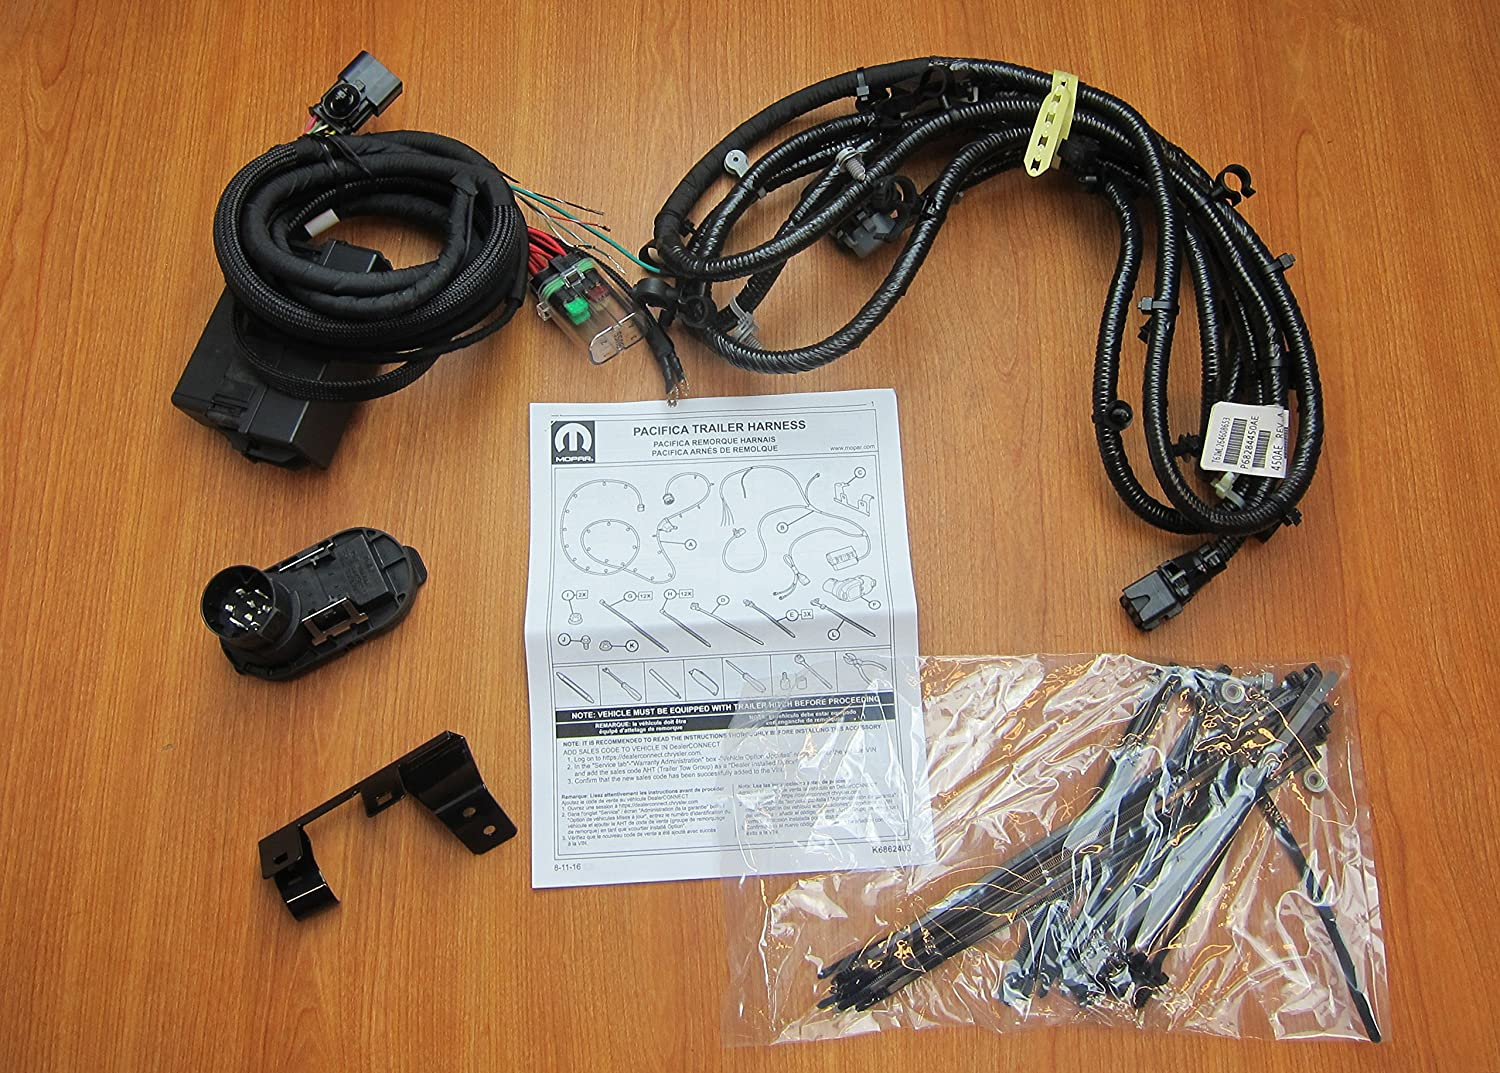 amazon com: chrysler pacifica trailer tow hitch wiring harness kit mopar  oem 82214522ab: automotive